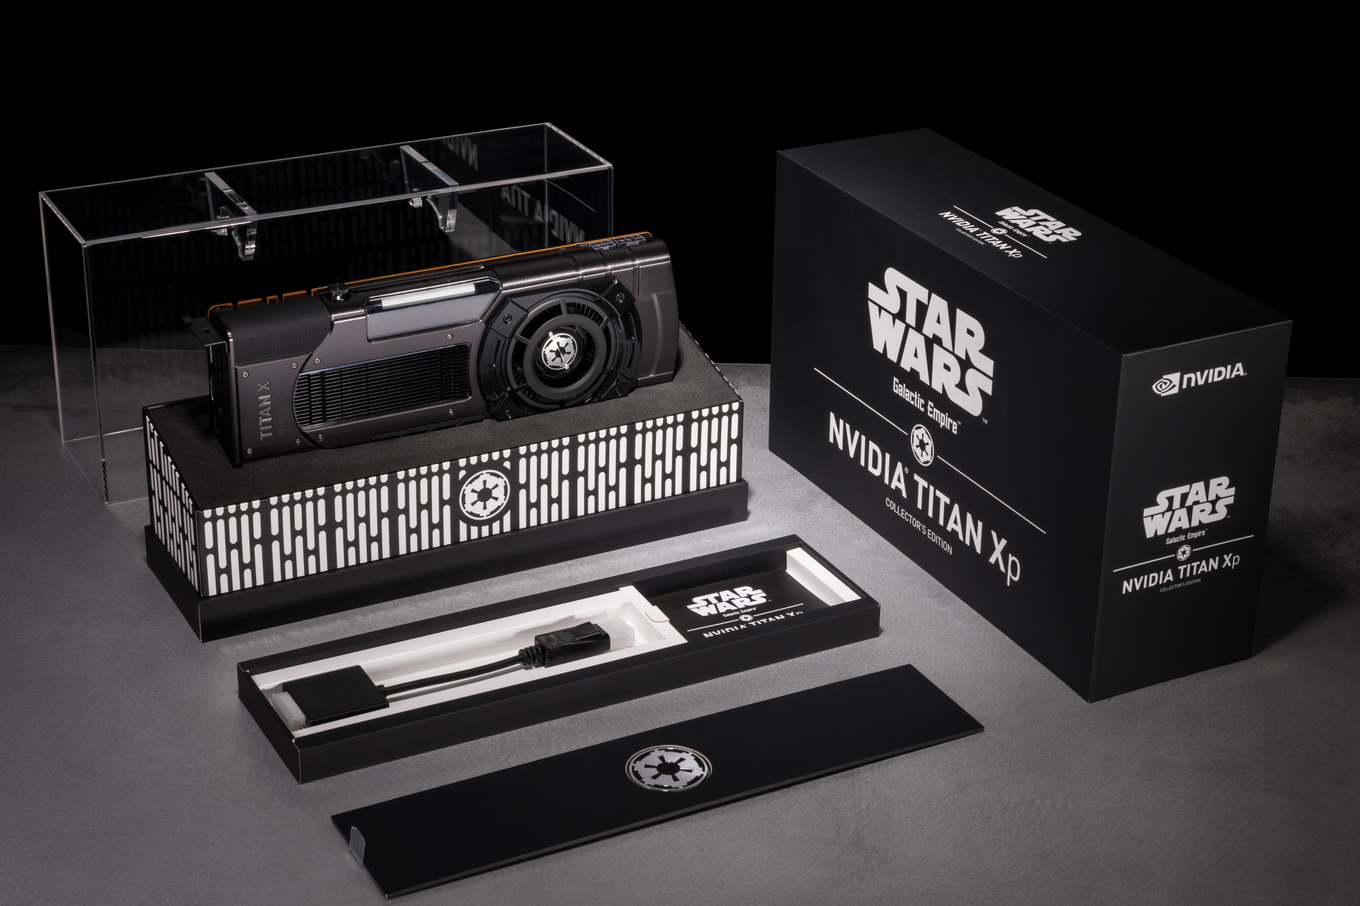 Nvidia выпустила видеокарты Titan Xp Collector's Edition для фанатов  Star Wars